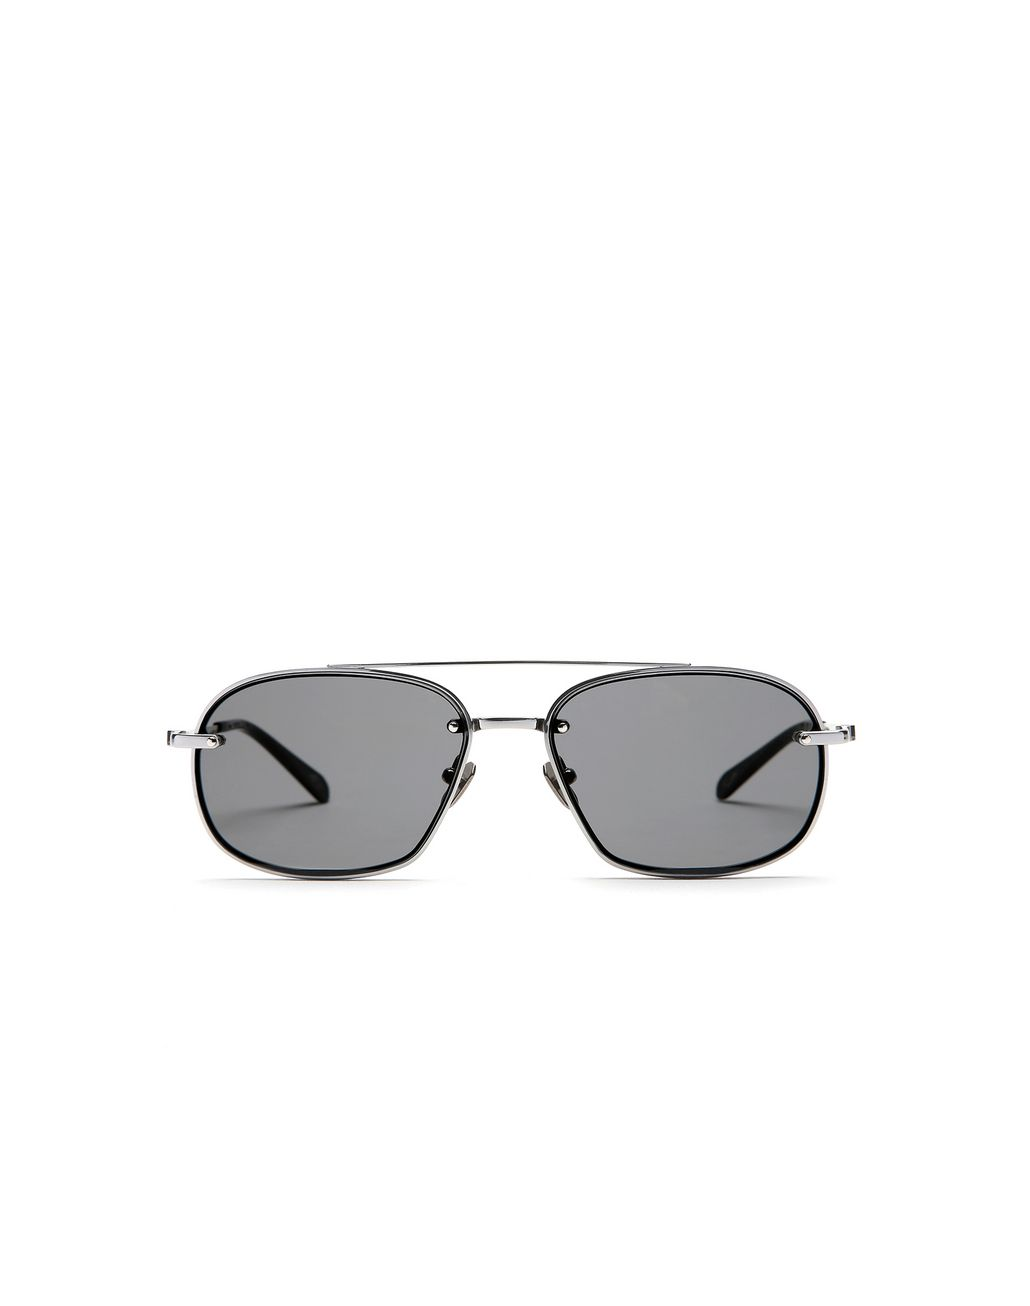 BRIONI Silver Teardrop Titanium Sunglasses with Grey Lenses  Sunglasses Man f